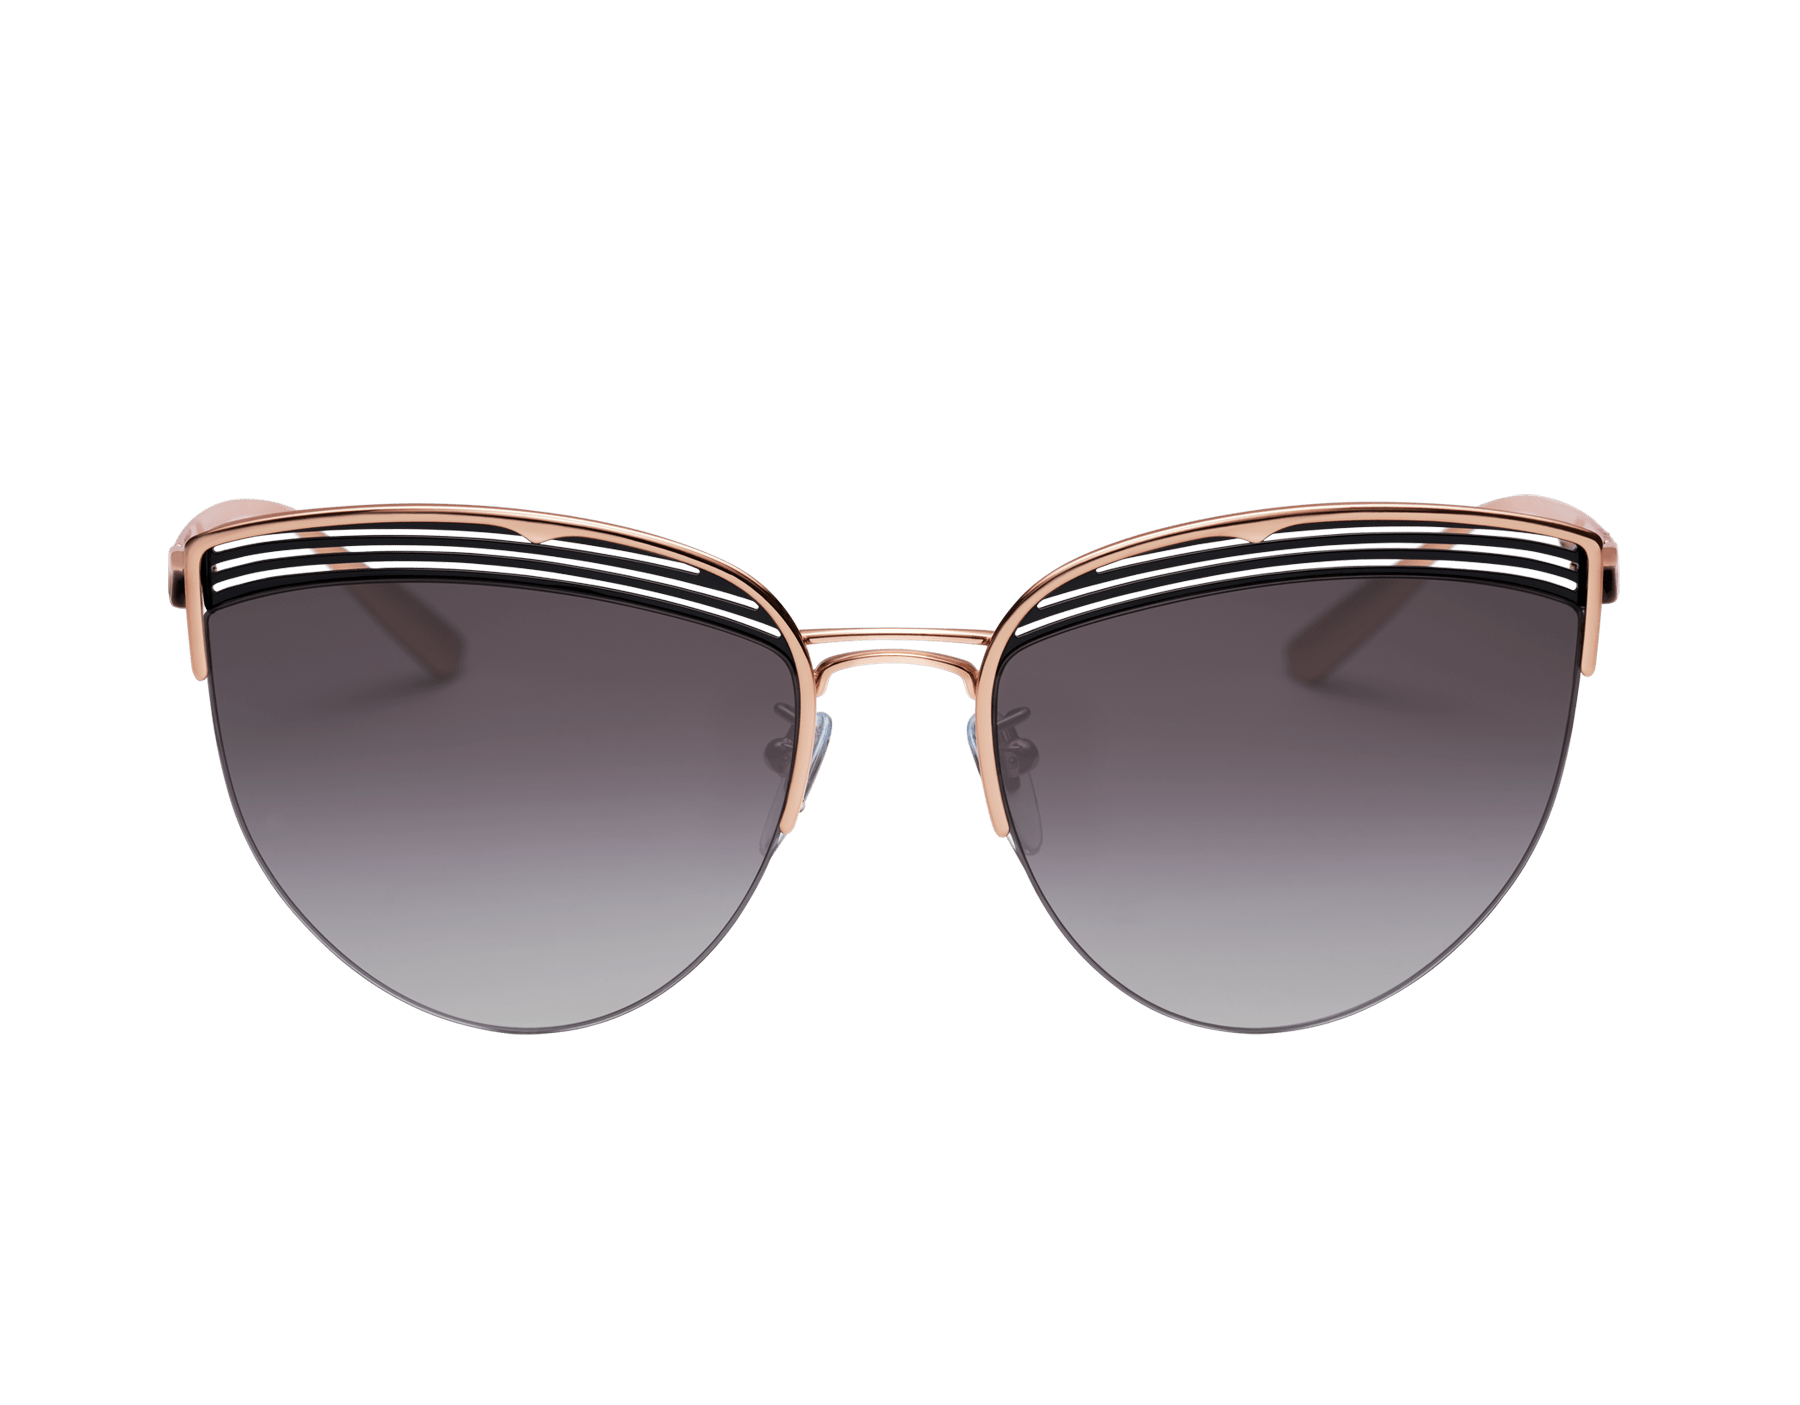 Bvlgari B.zero1 B.purevibes semi-rimless cat-eye metal sunglasses. 903712 image 2